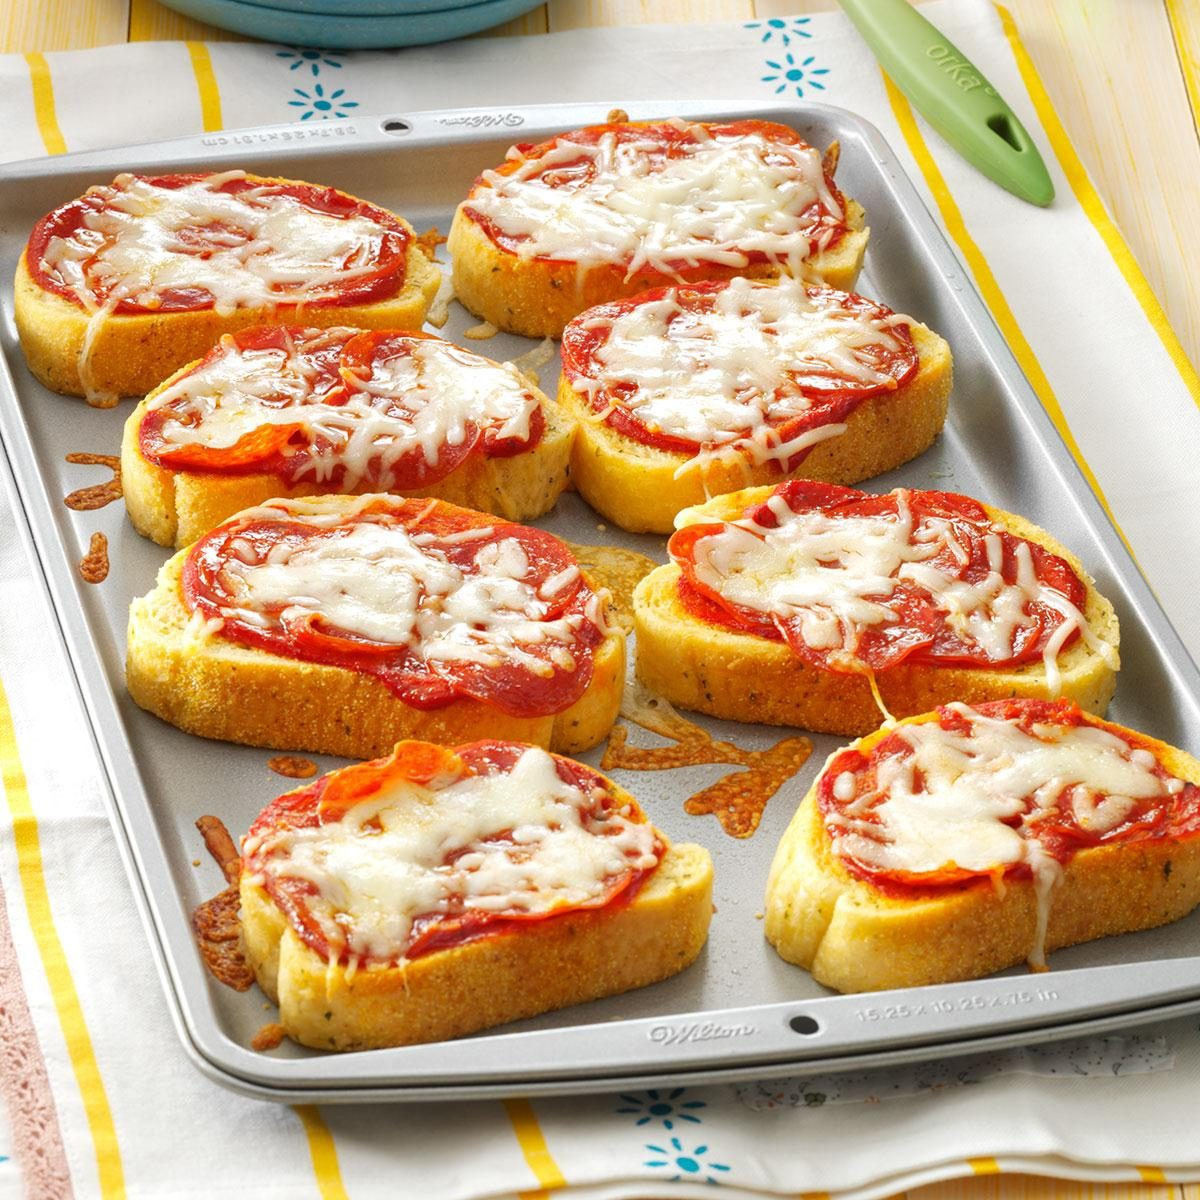 Middle School Age: Garlic Toast Pizzas